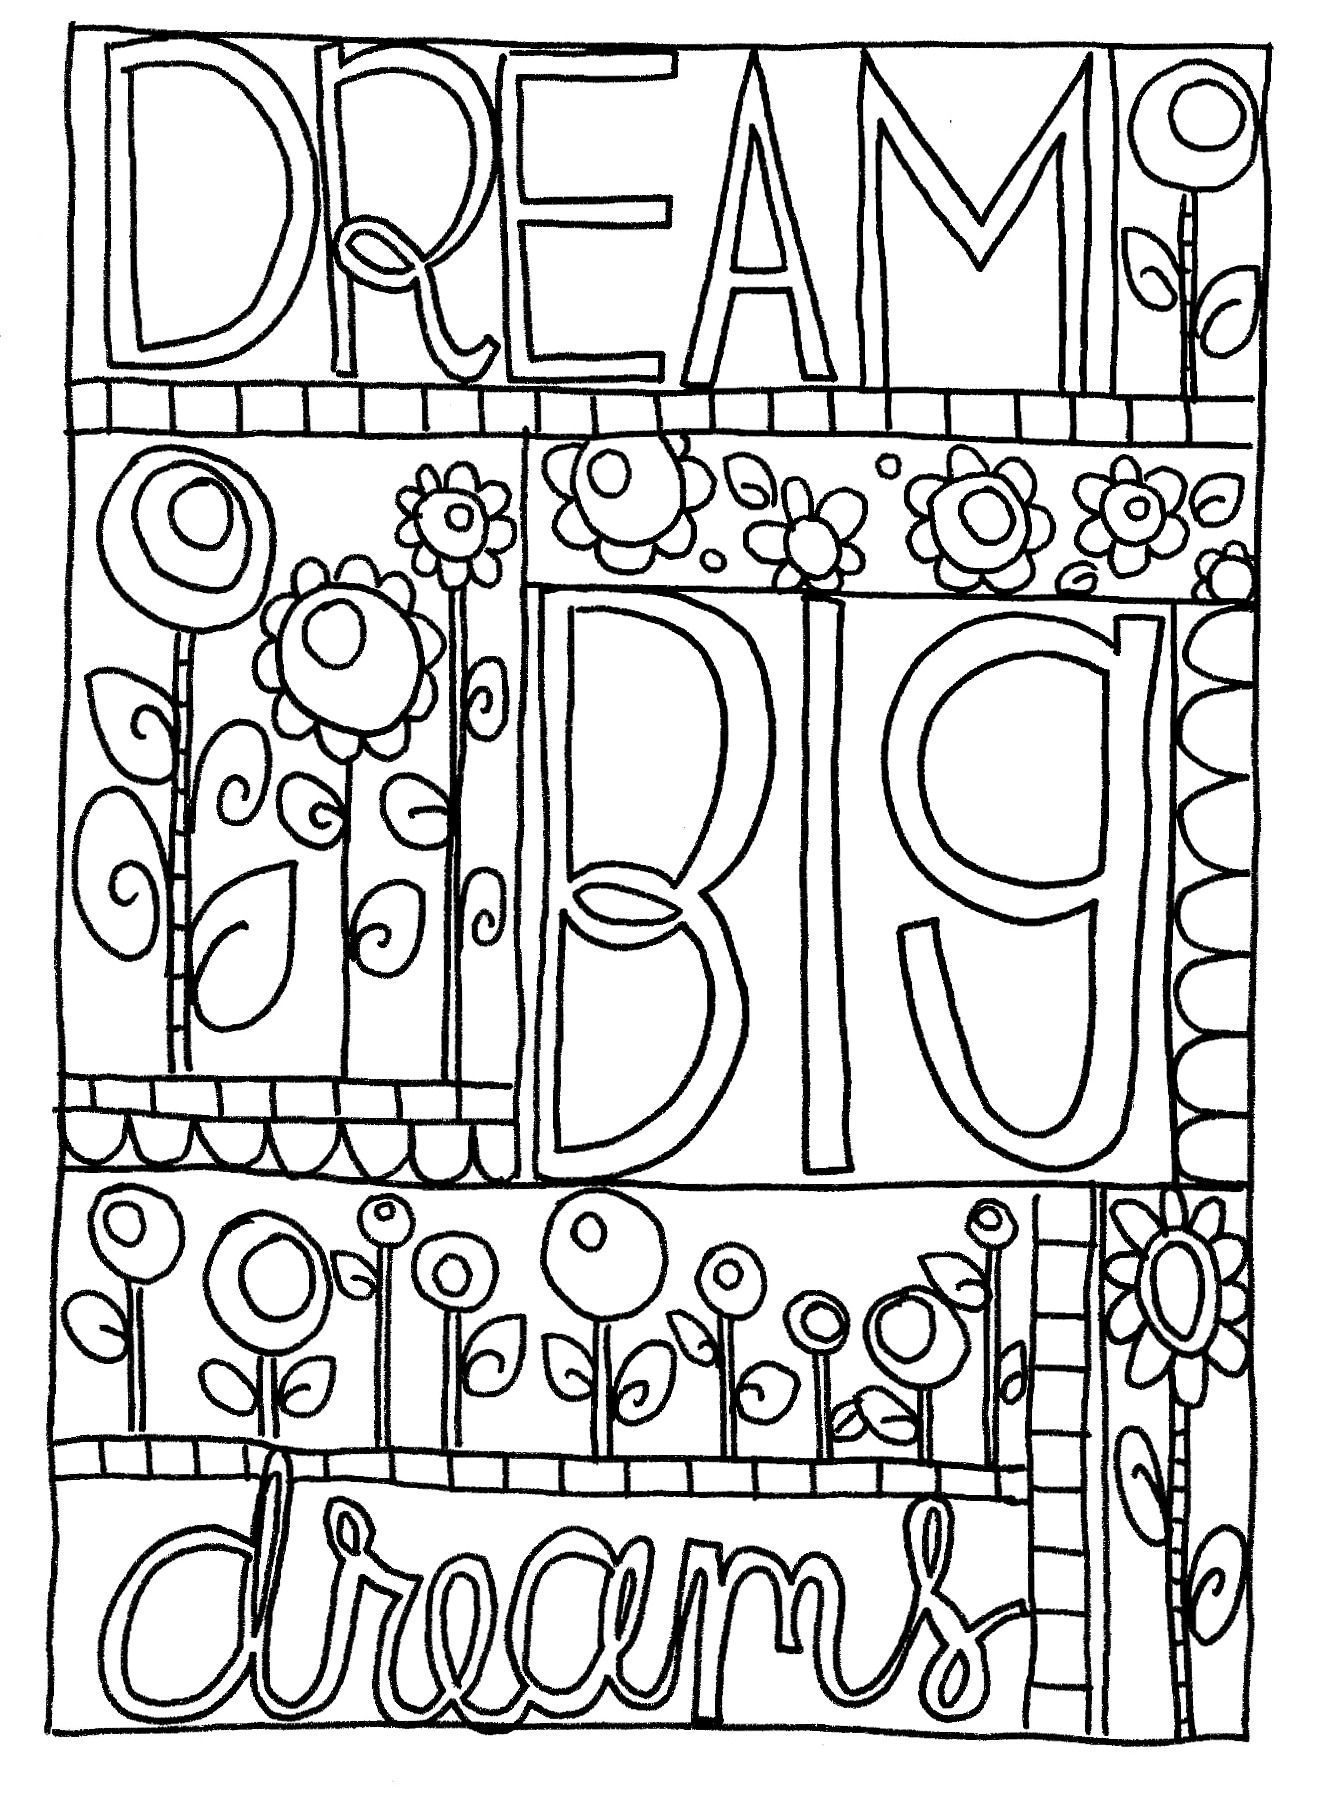 Dreambigdreams Jpg 1320 1808 Free Coloring Pages Free Doodles Coloring Pages